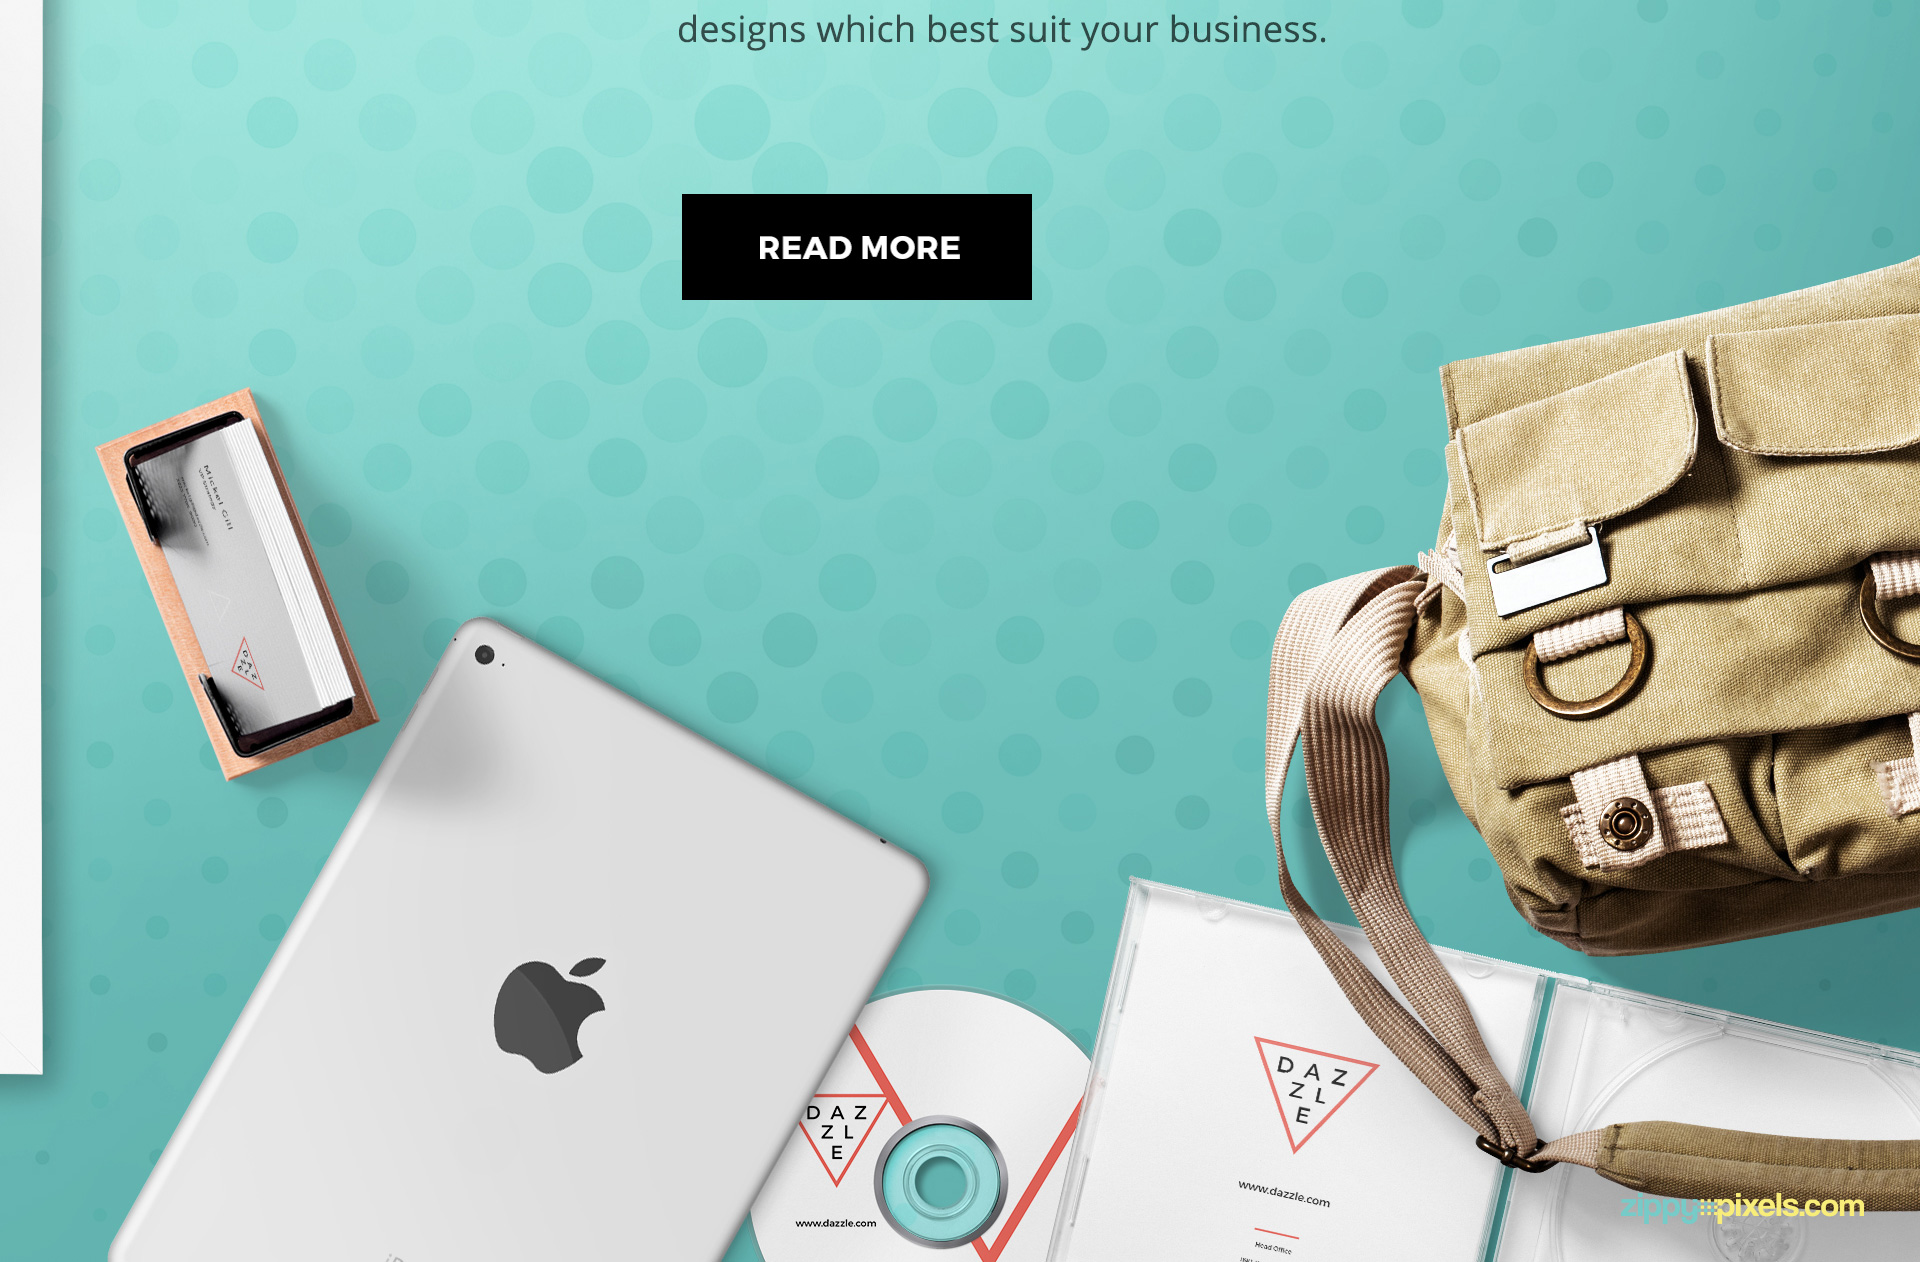 All items including this iPad, business card, CD, bag, and CD cover are placed on separate folders.